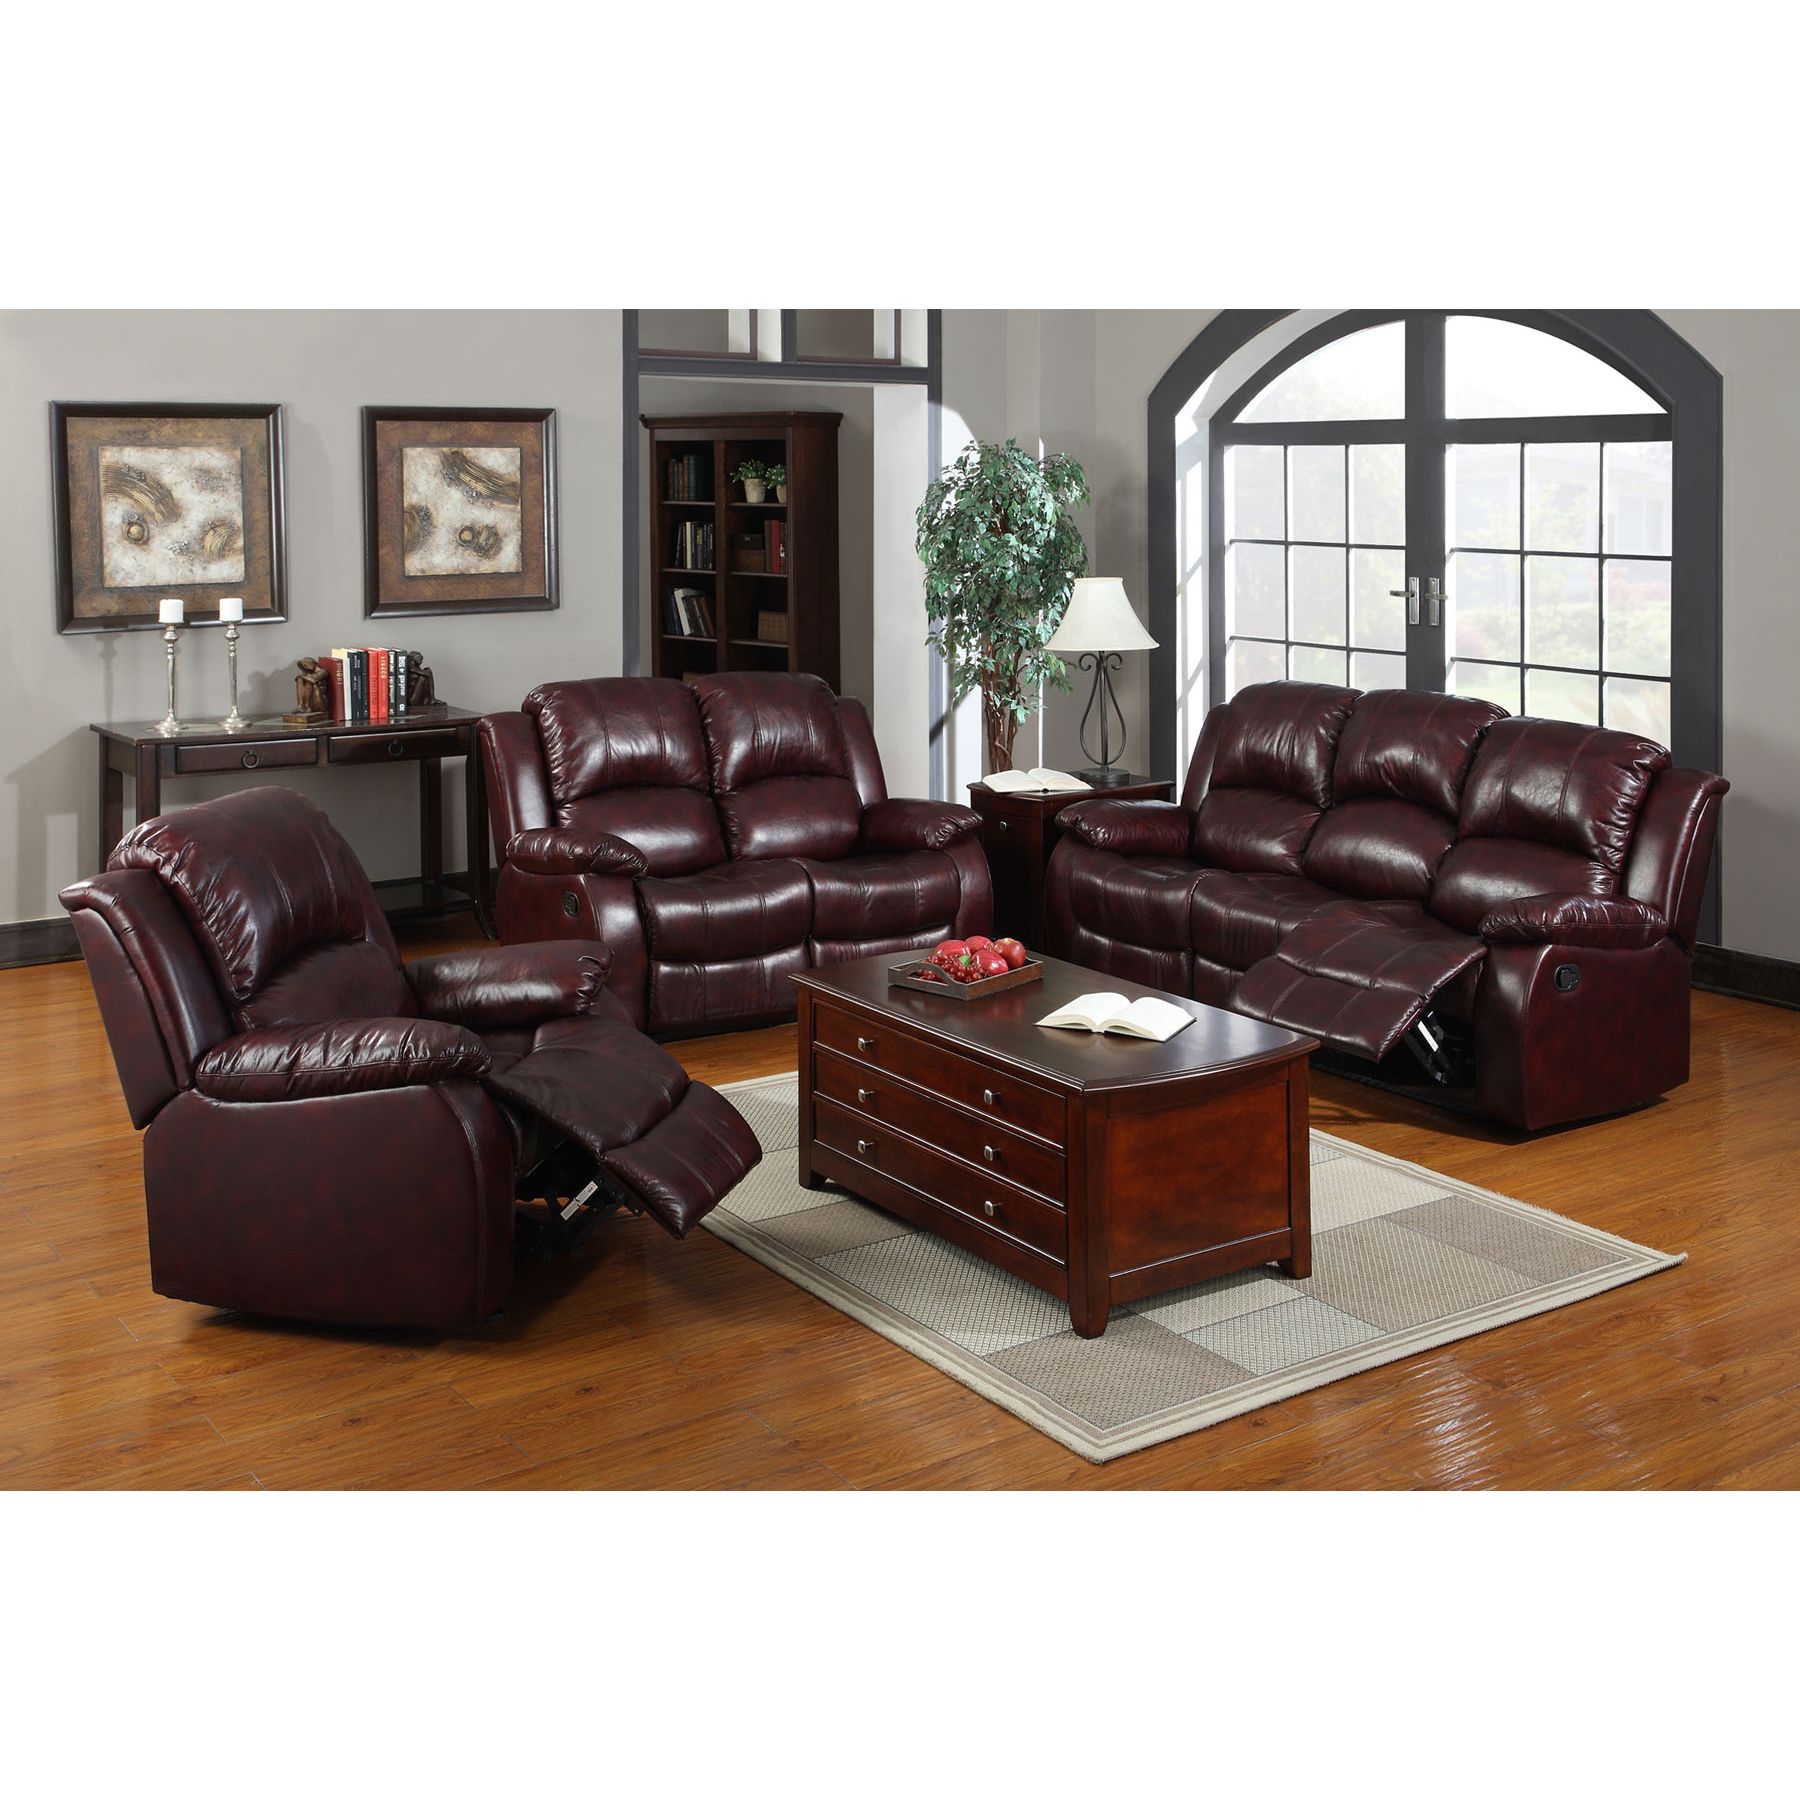 Venetian Worldwide Devon Leather-Like Recliner Chair